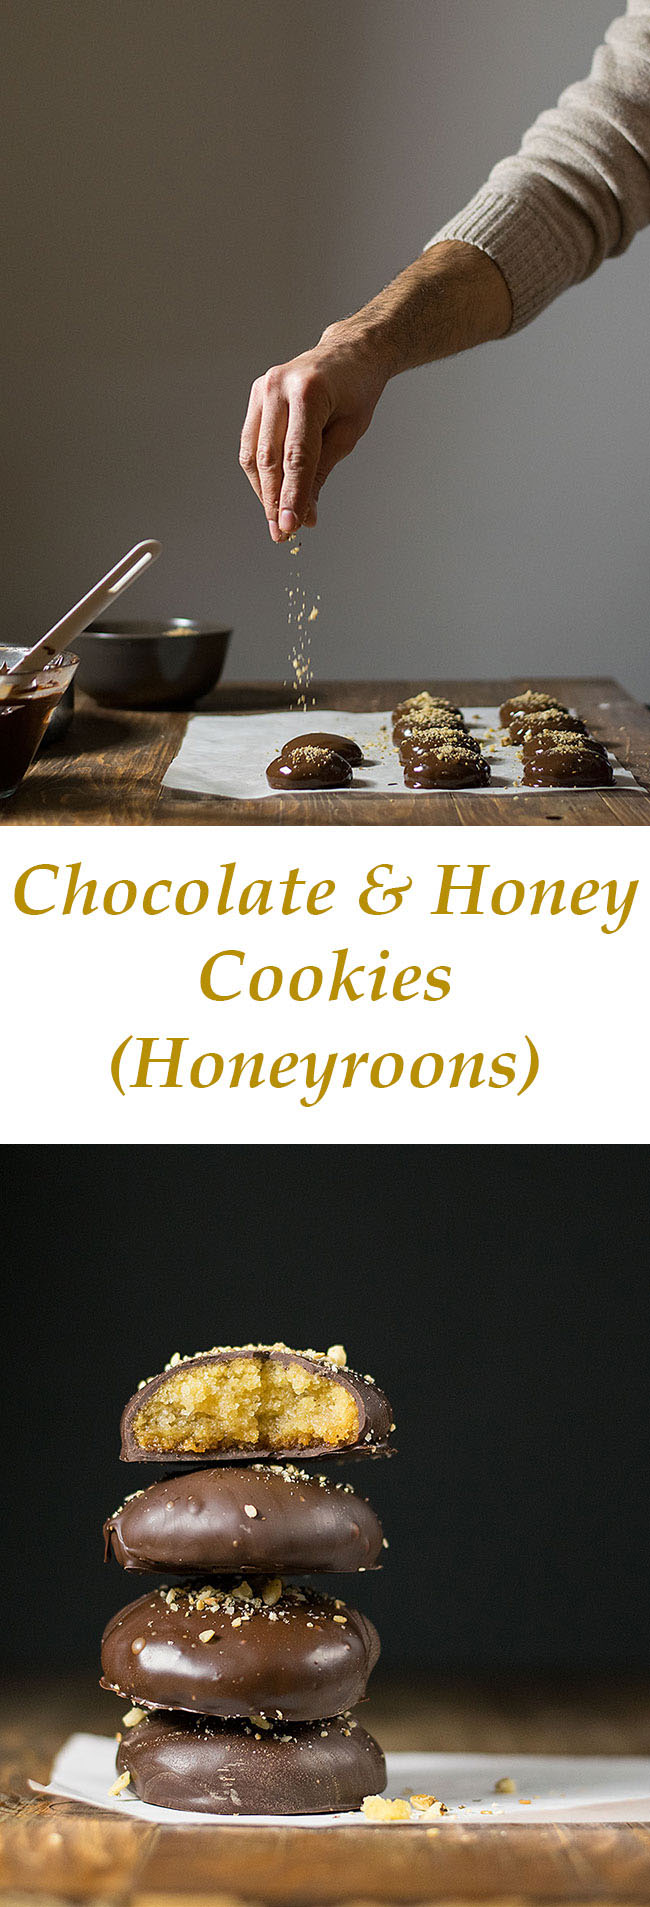 chocolate-honey-cookies-6